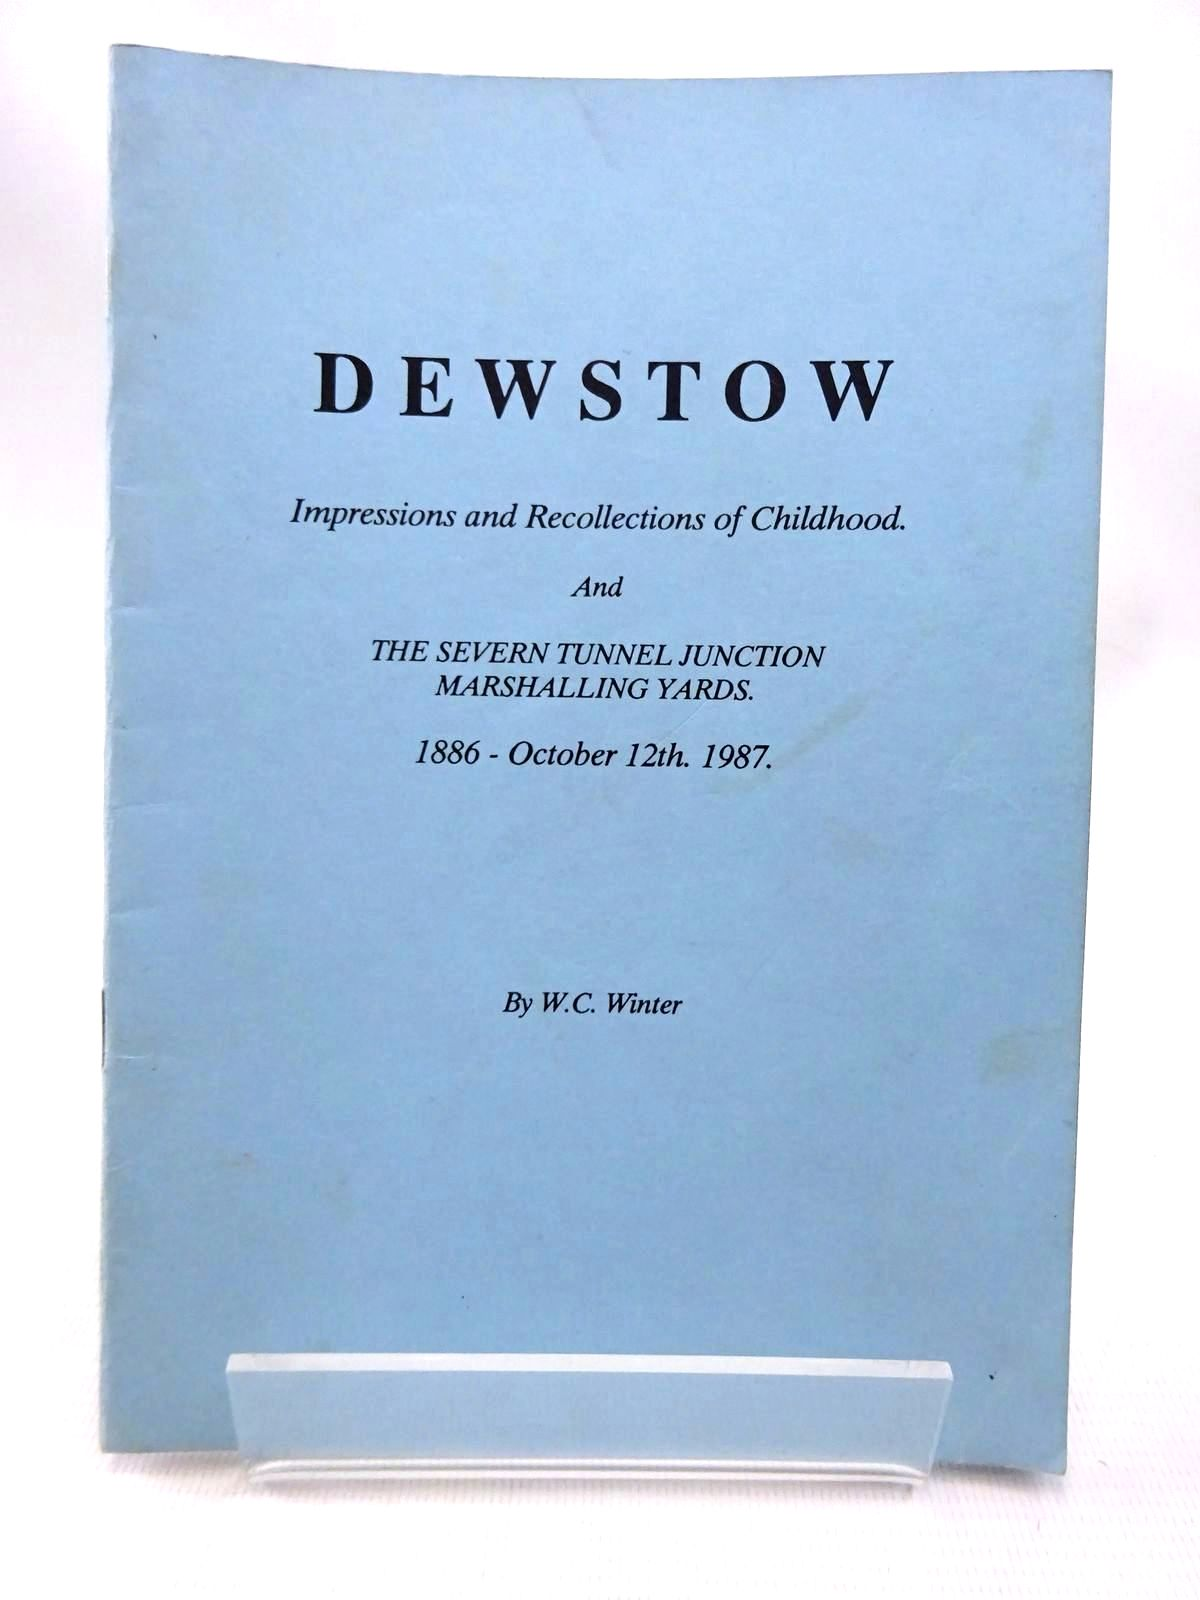 Photo of DEWSTOW: IMPRESSIONS AND RECOLLECTIONS OF CHILDHOOD & THE SEVERN TUNNEL JUNCTION MARSHALLING YARDS written by Winter, W.C. published by W.C. Winter (STOCK CODE: 1815793)  for sale by Stella & Rose's Books